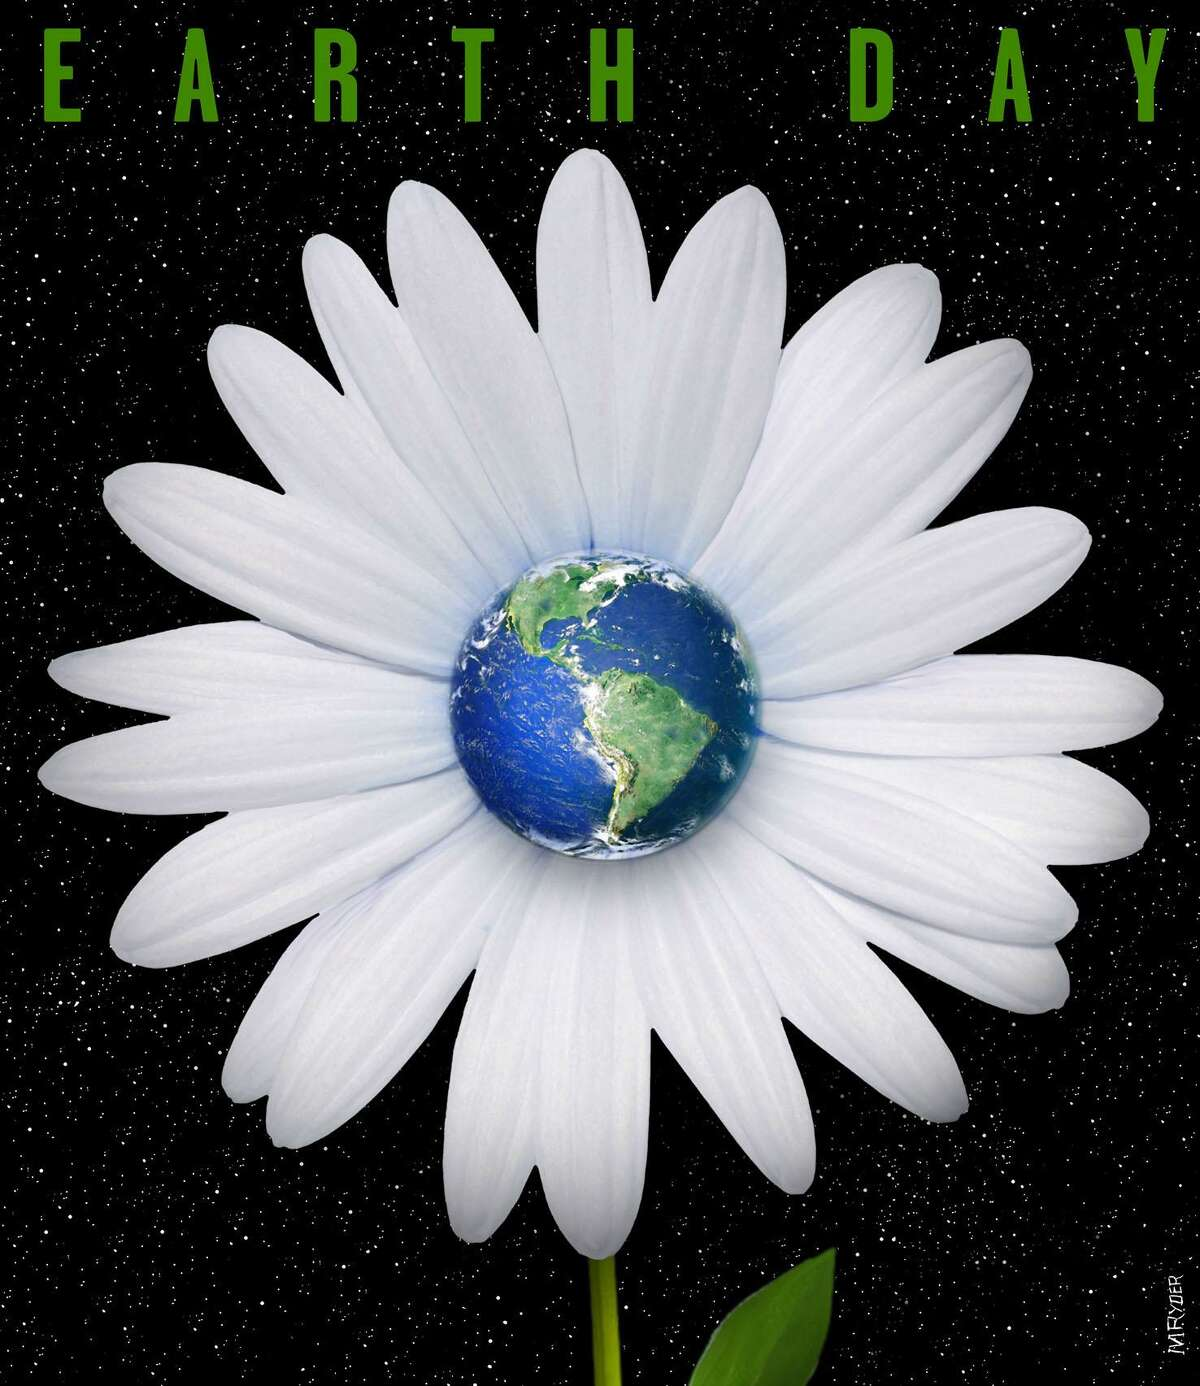 This artwork by M. Ryder refers to Earth Day, April 22.